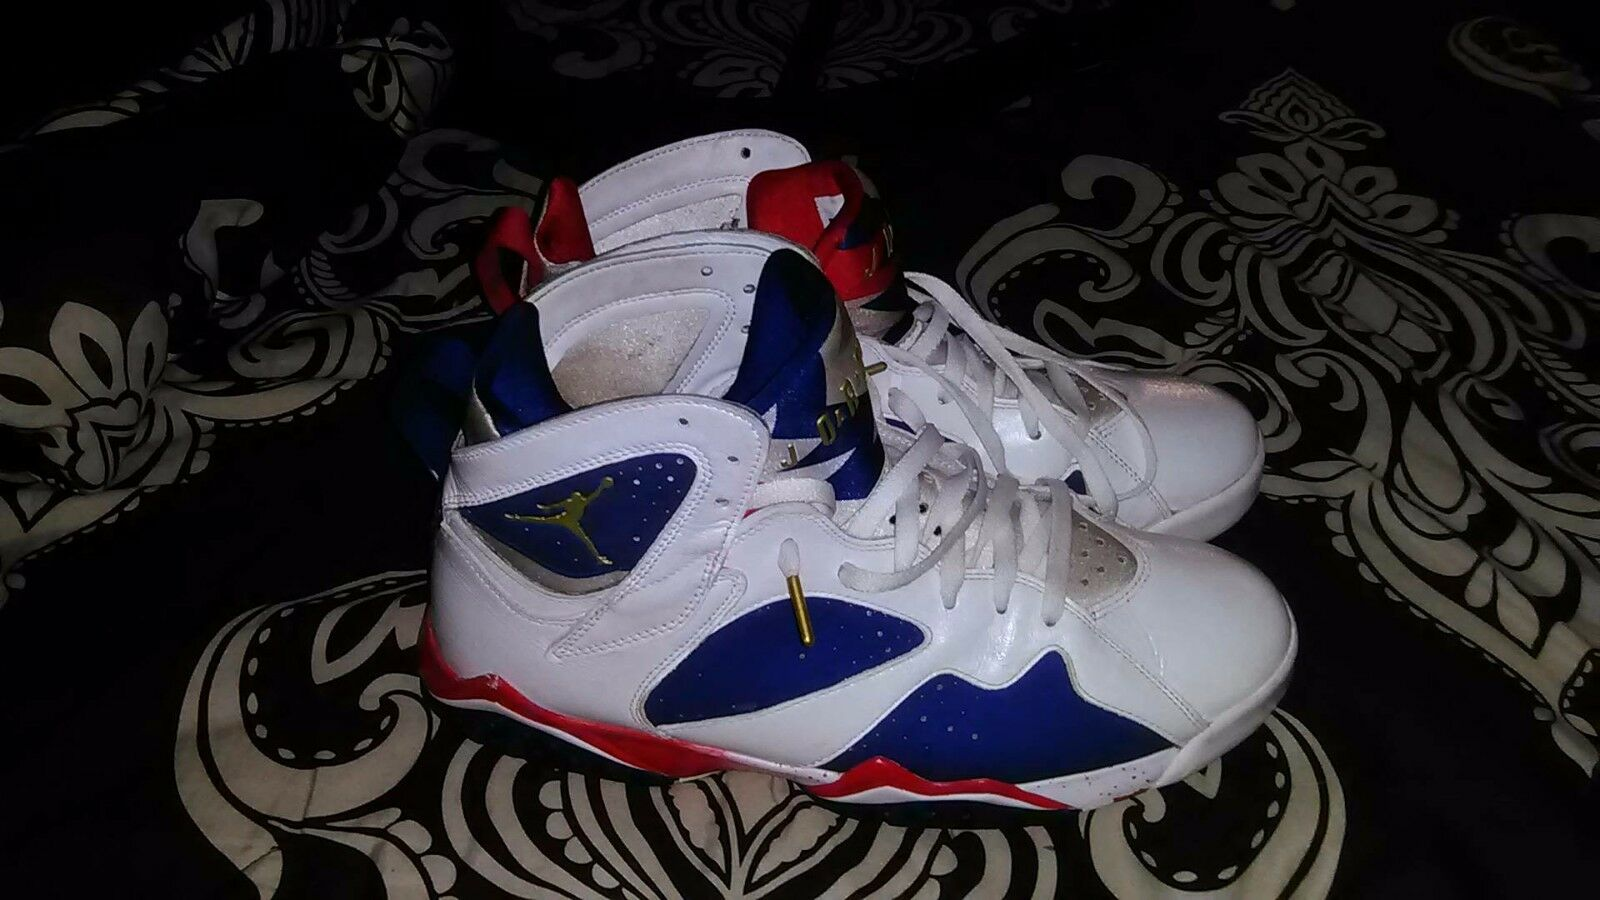 Nike Air Jordan Retro 7 tinker alternate 2018 Release Comfortable The most popular shoes for men and women